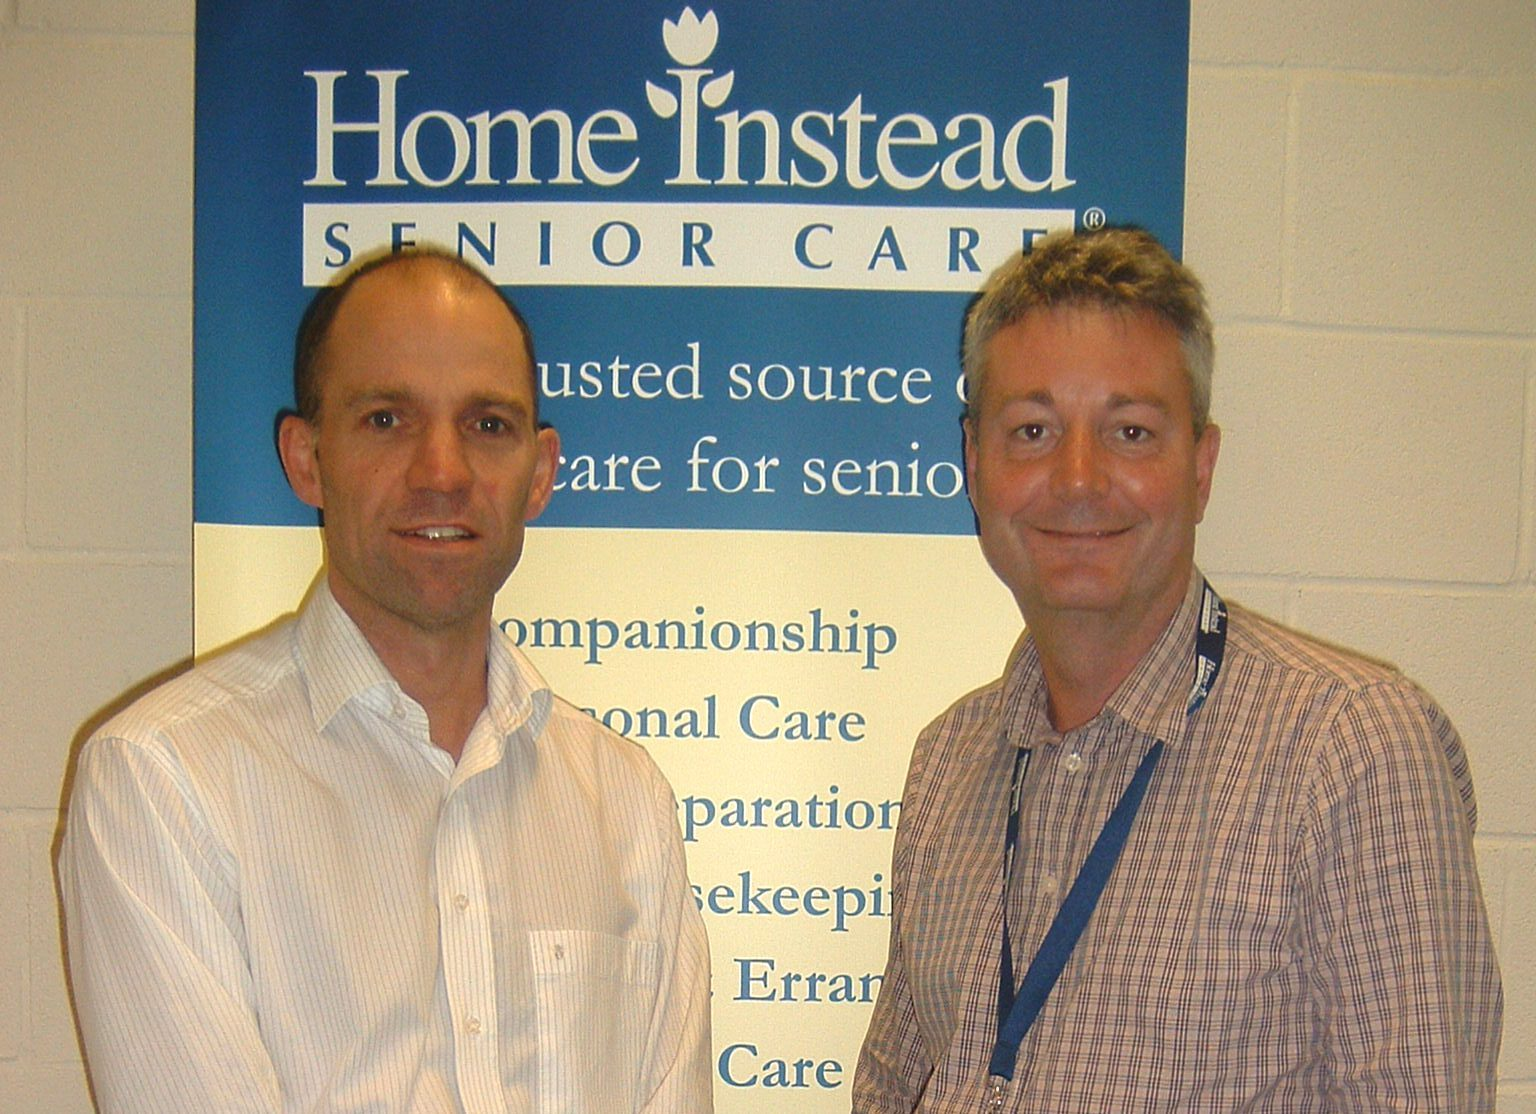 Home Instead Senior Care Derby South and Burton-on-Trent owners Andy Ryans and John Winfieldale after receiving their CQC Excellent rating